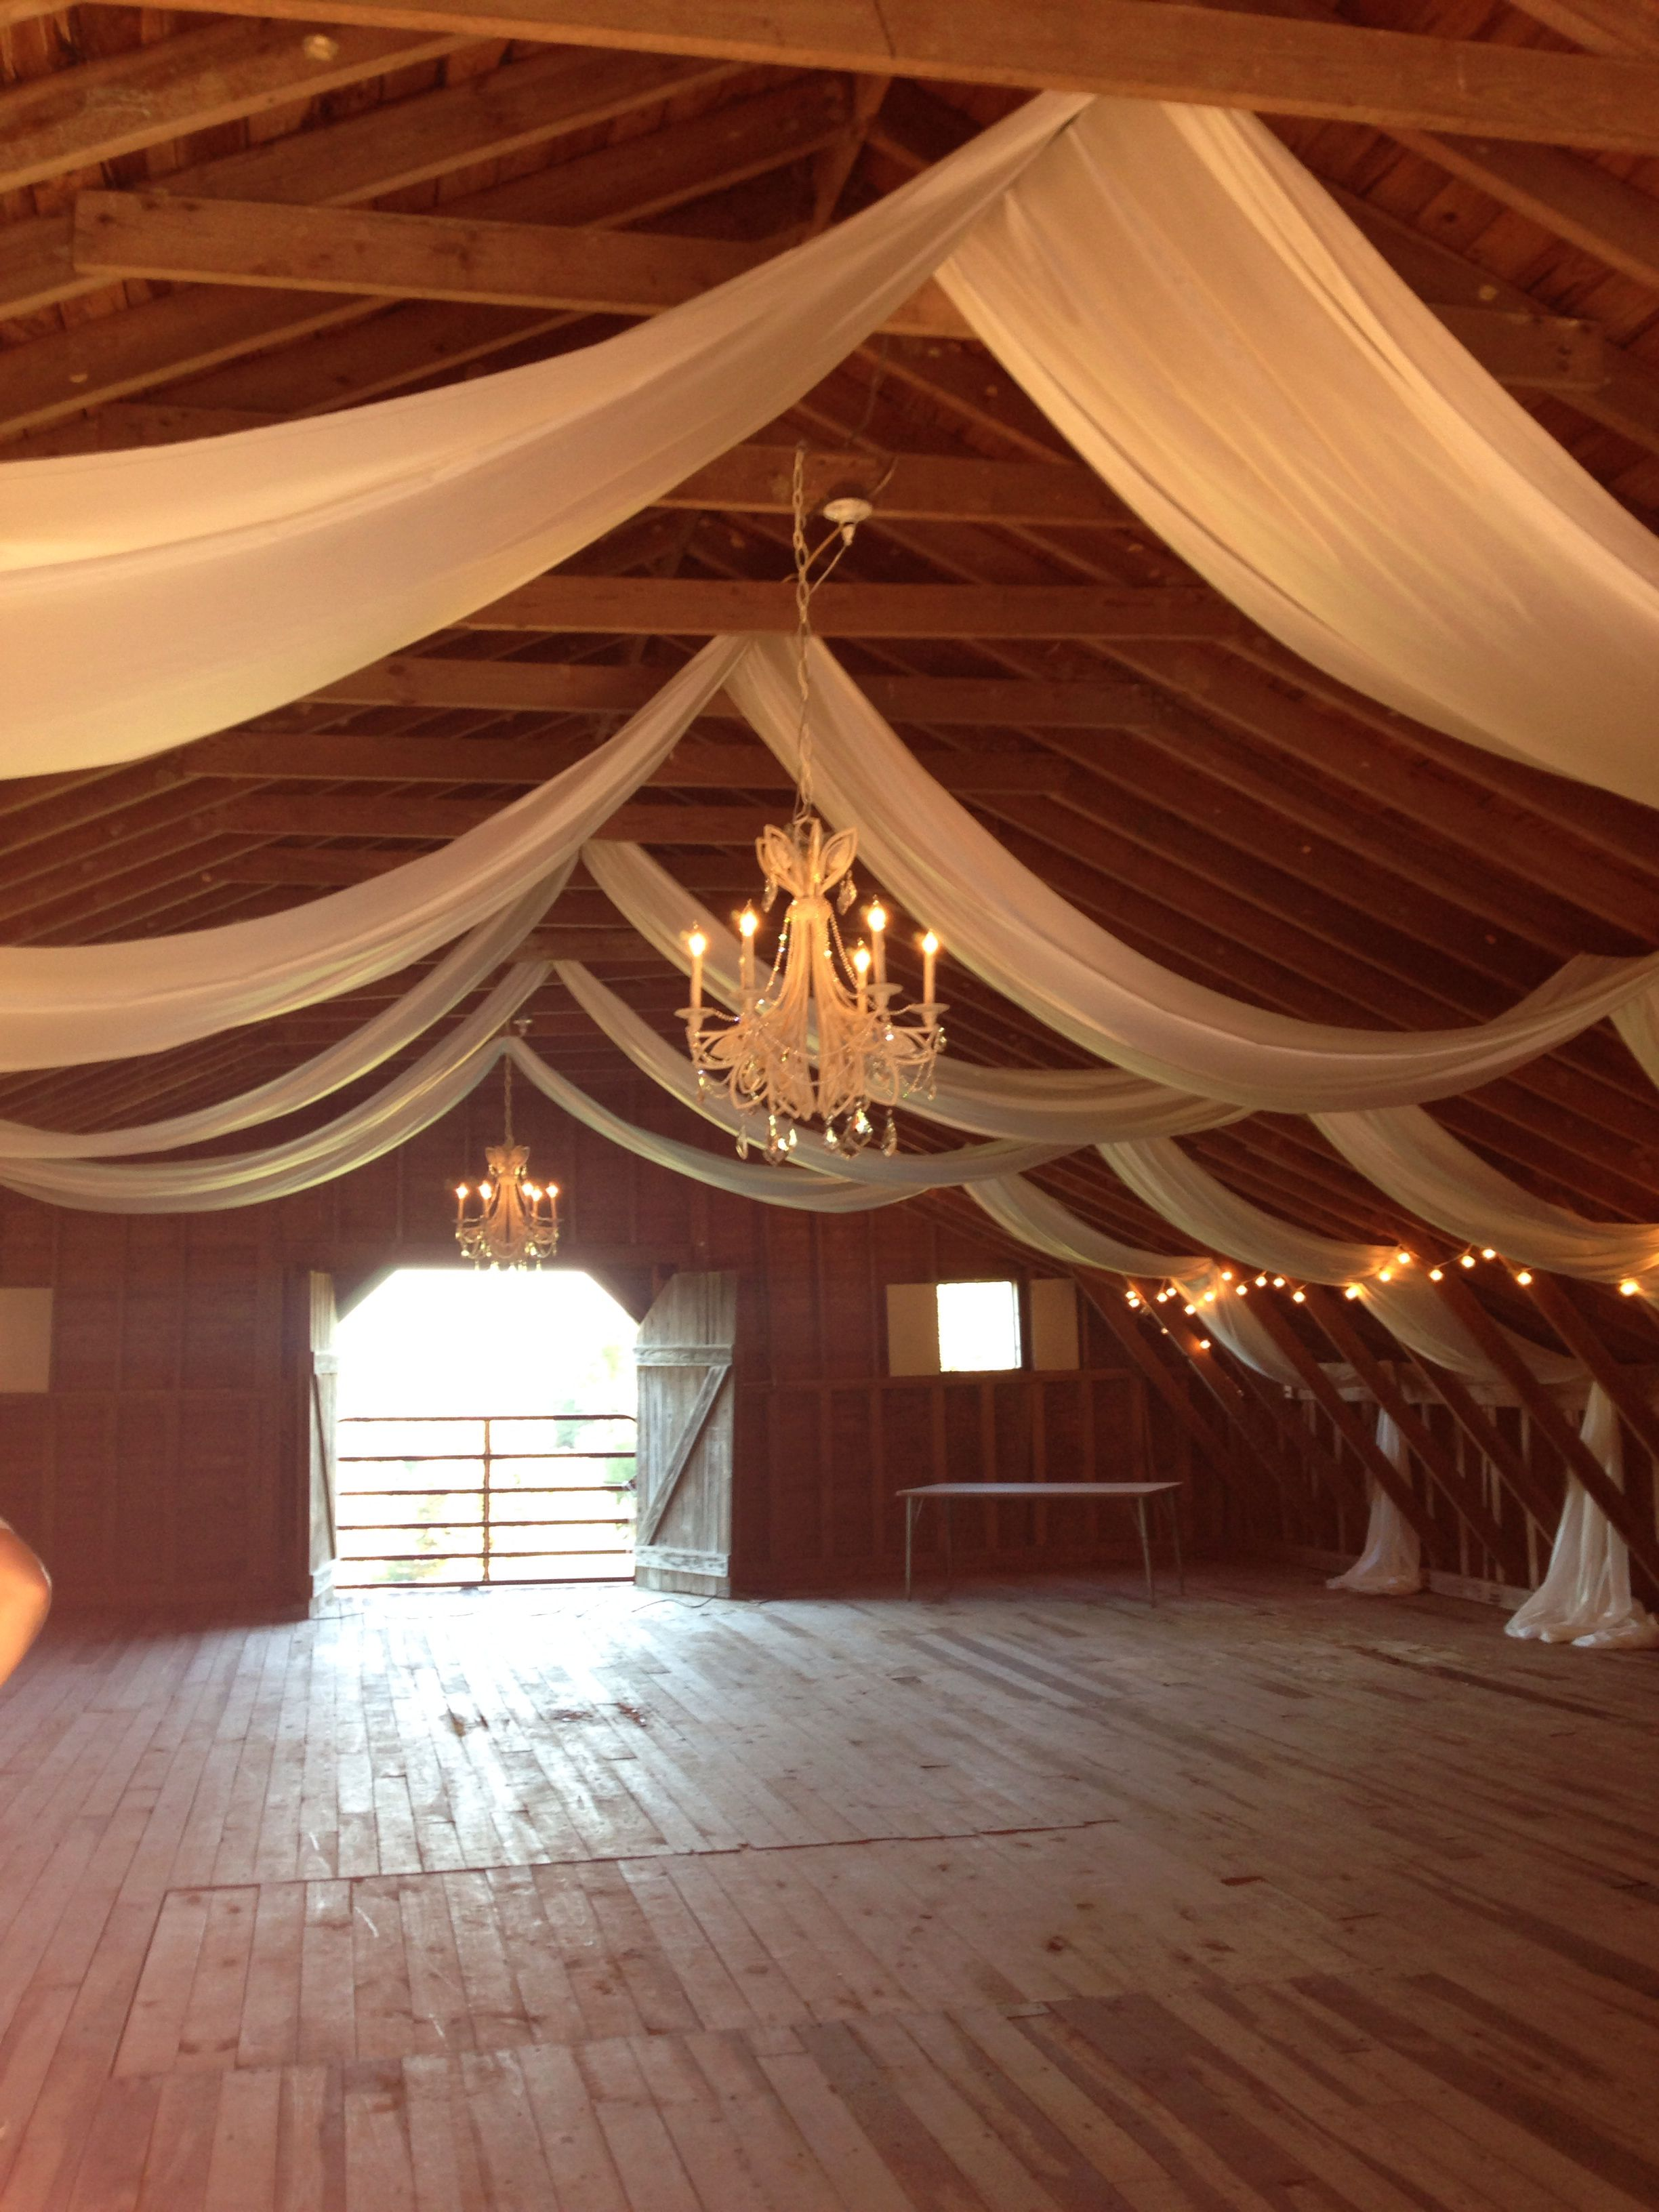 Fabric D Barn Loft With Chandeliers Used For Dance Floor Bar Area Bistro Tables